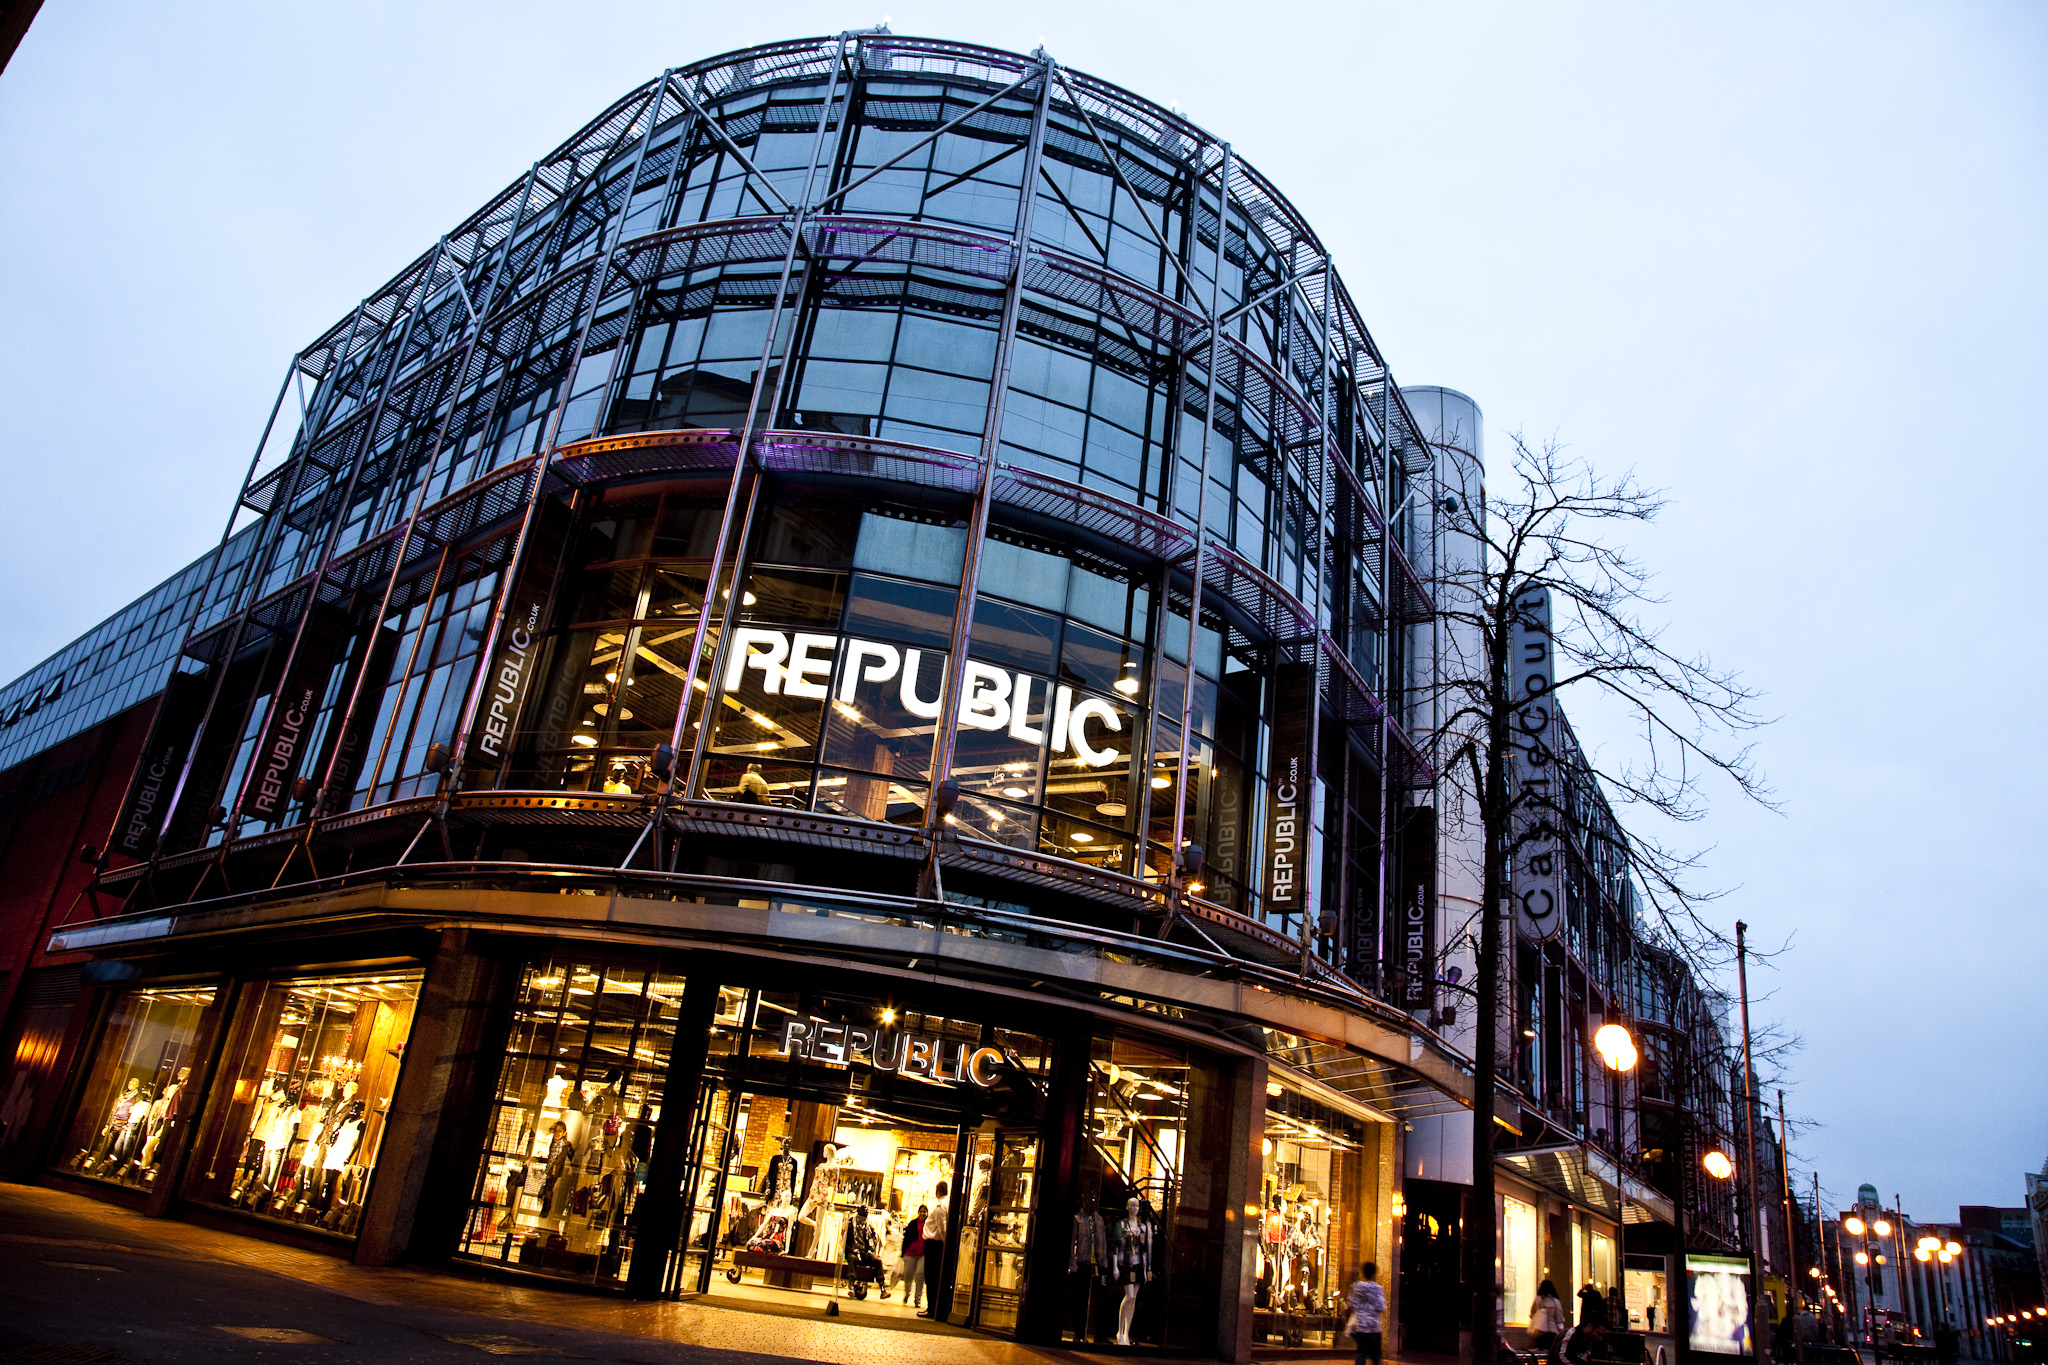 Republic   A close working relationship spanning over 10 years, o1creative helped Republic, a young fashion brand, grow from 5 stores to over 150 outlets across the UK.